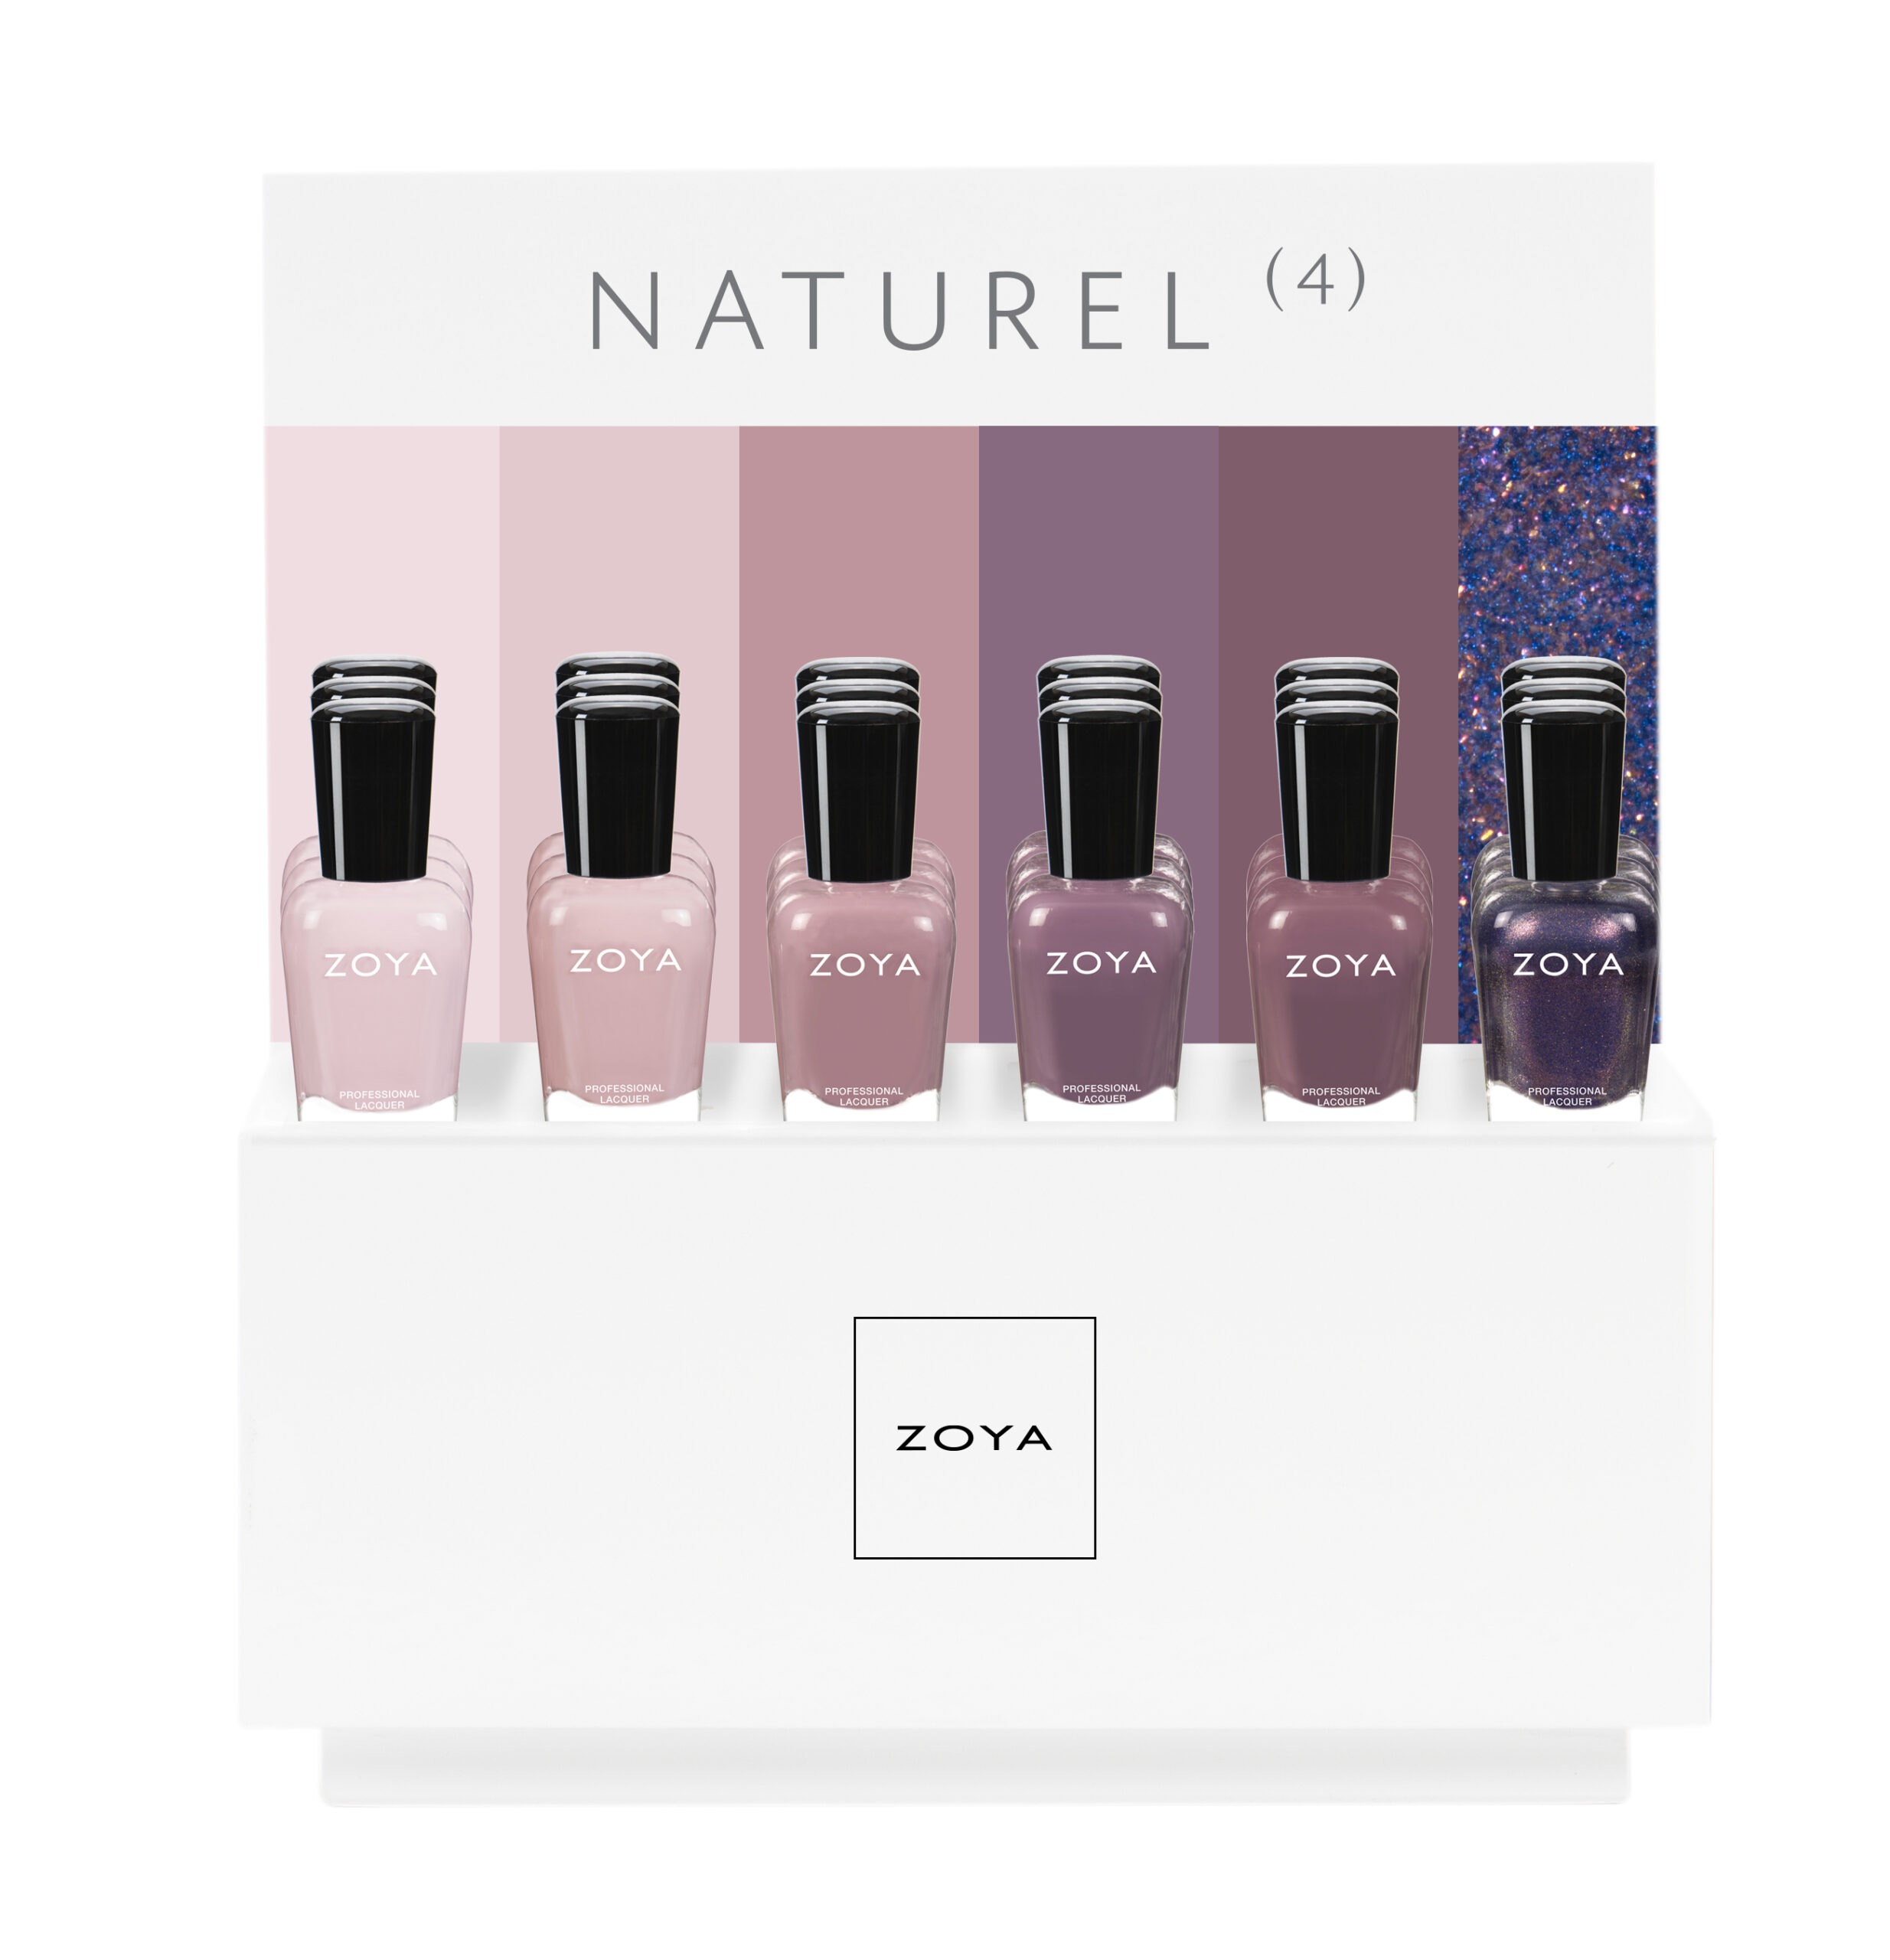 zoya naturel 4